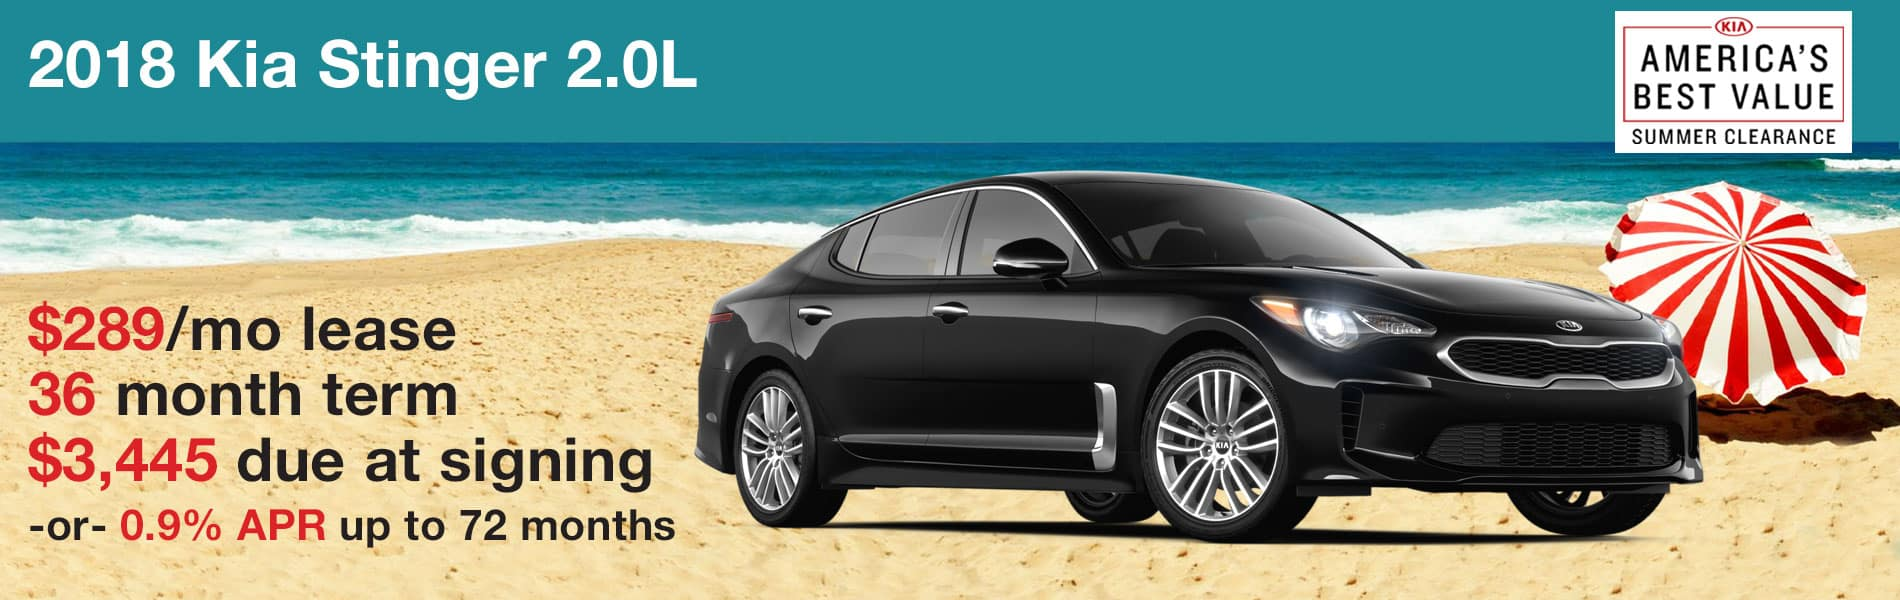 Lease a 2018 Kia Stinger 2.0L for $289 with $3,445 due at signing or 0.9% APR financing up to 72 months.